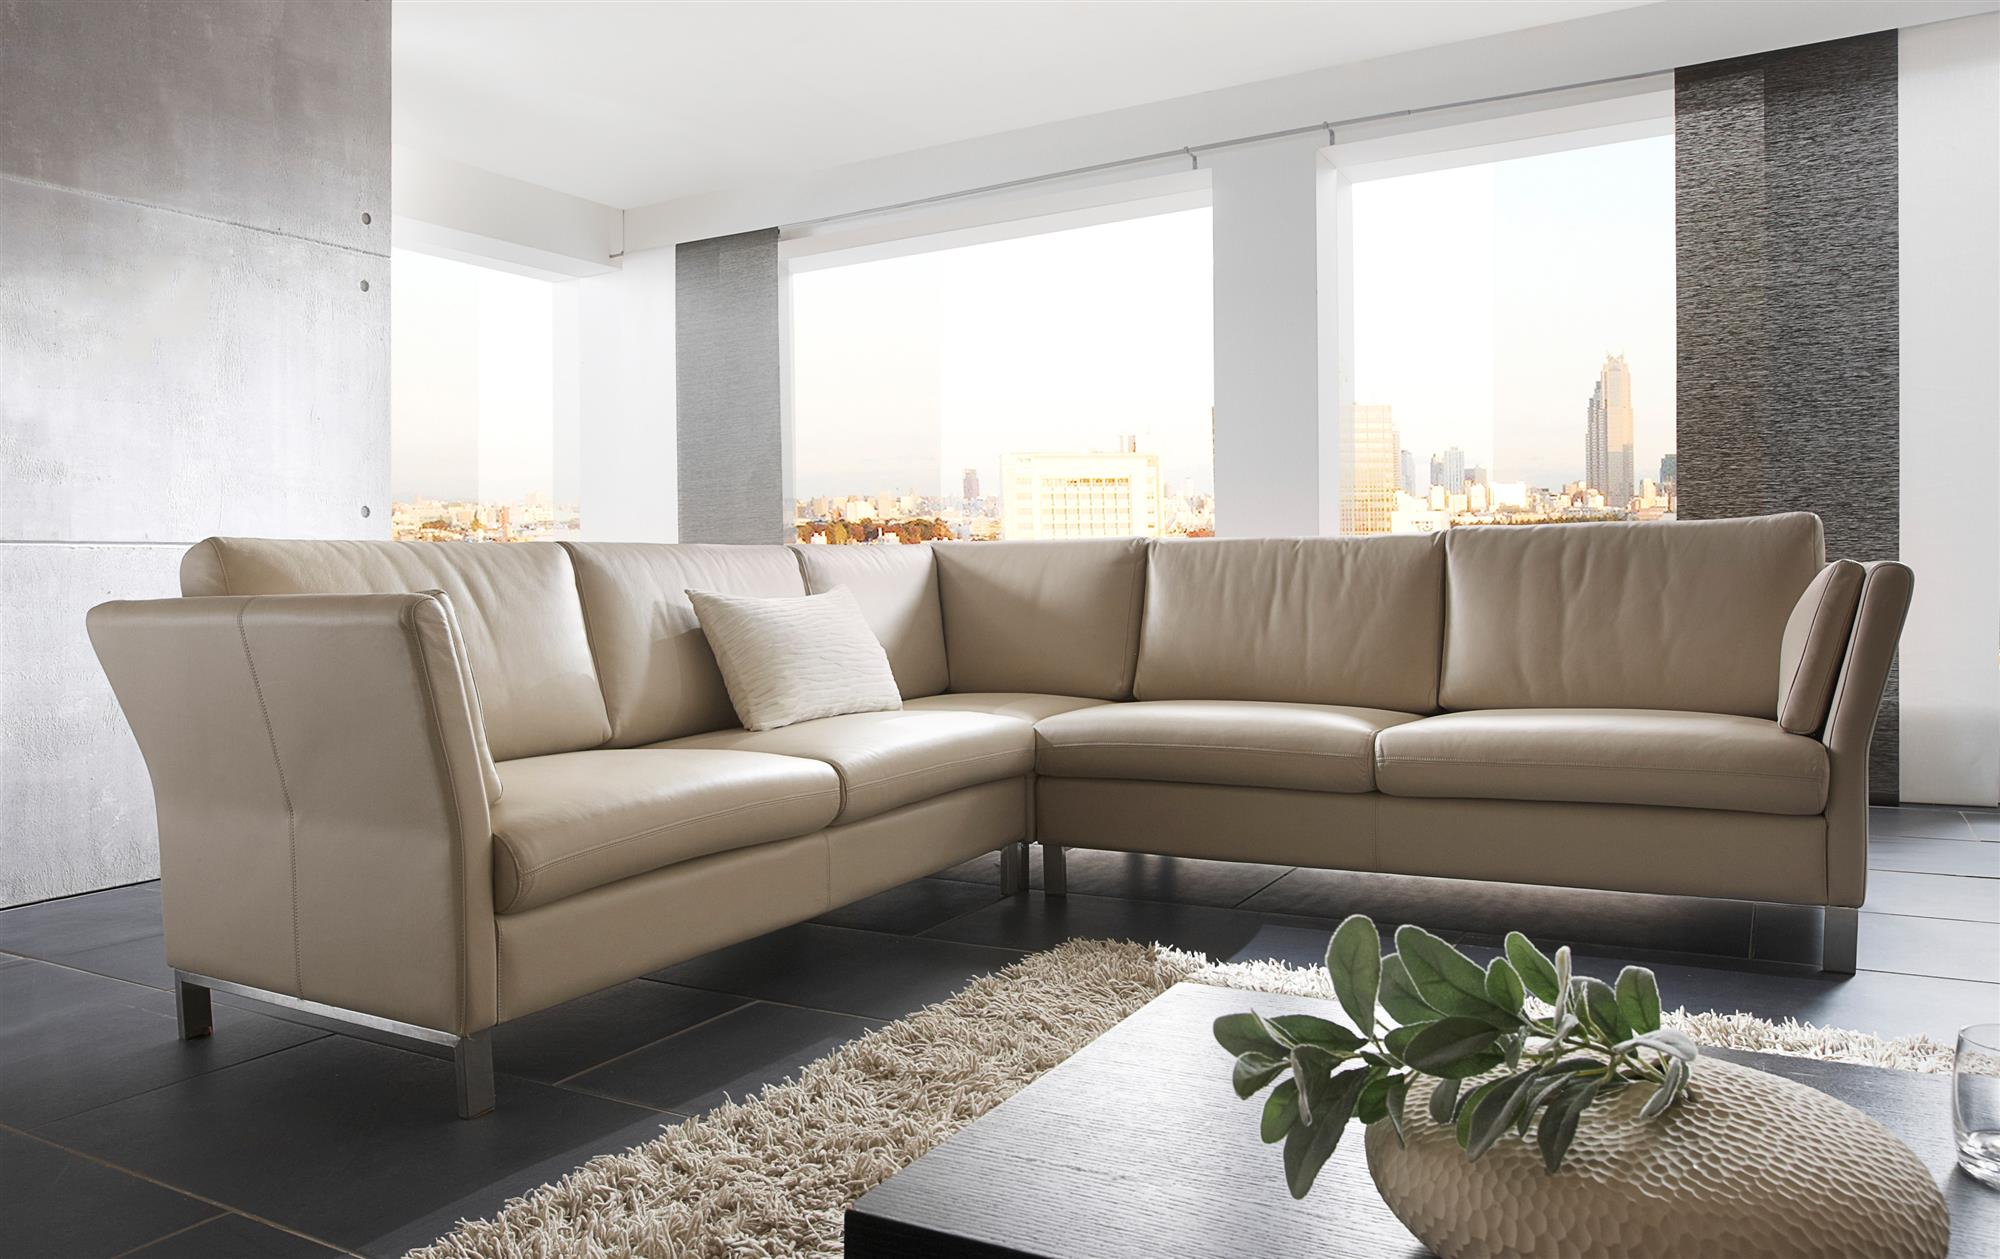 Sofa Würzburg in Leder | sessel-manufaktur.de